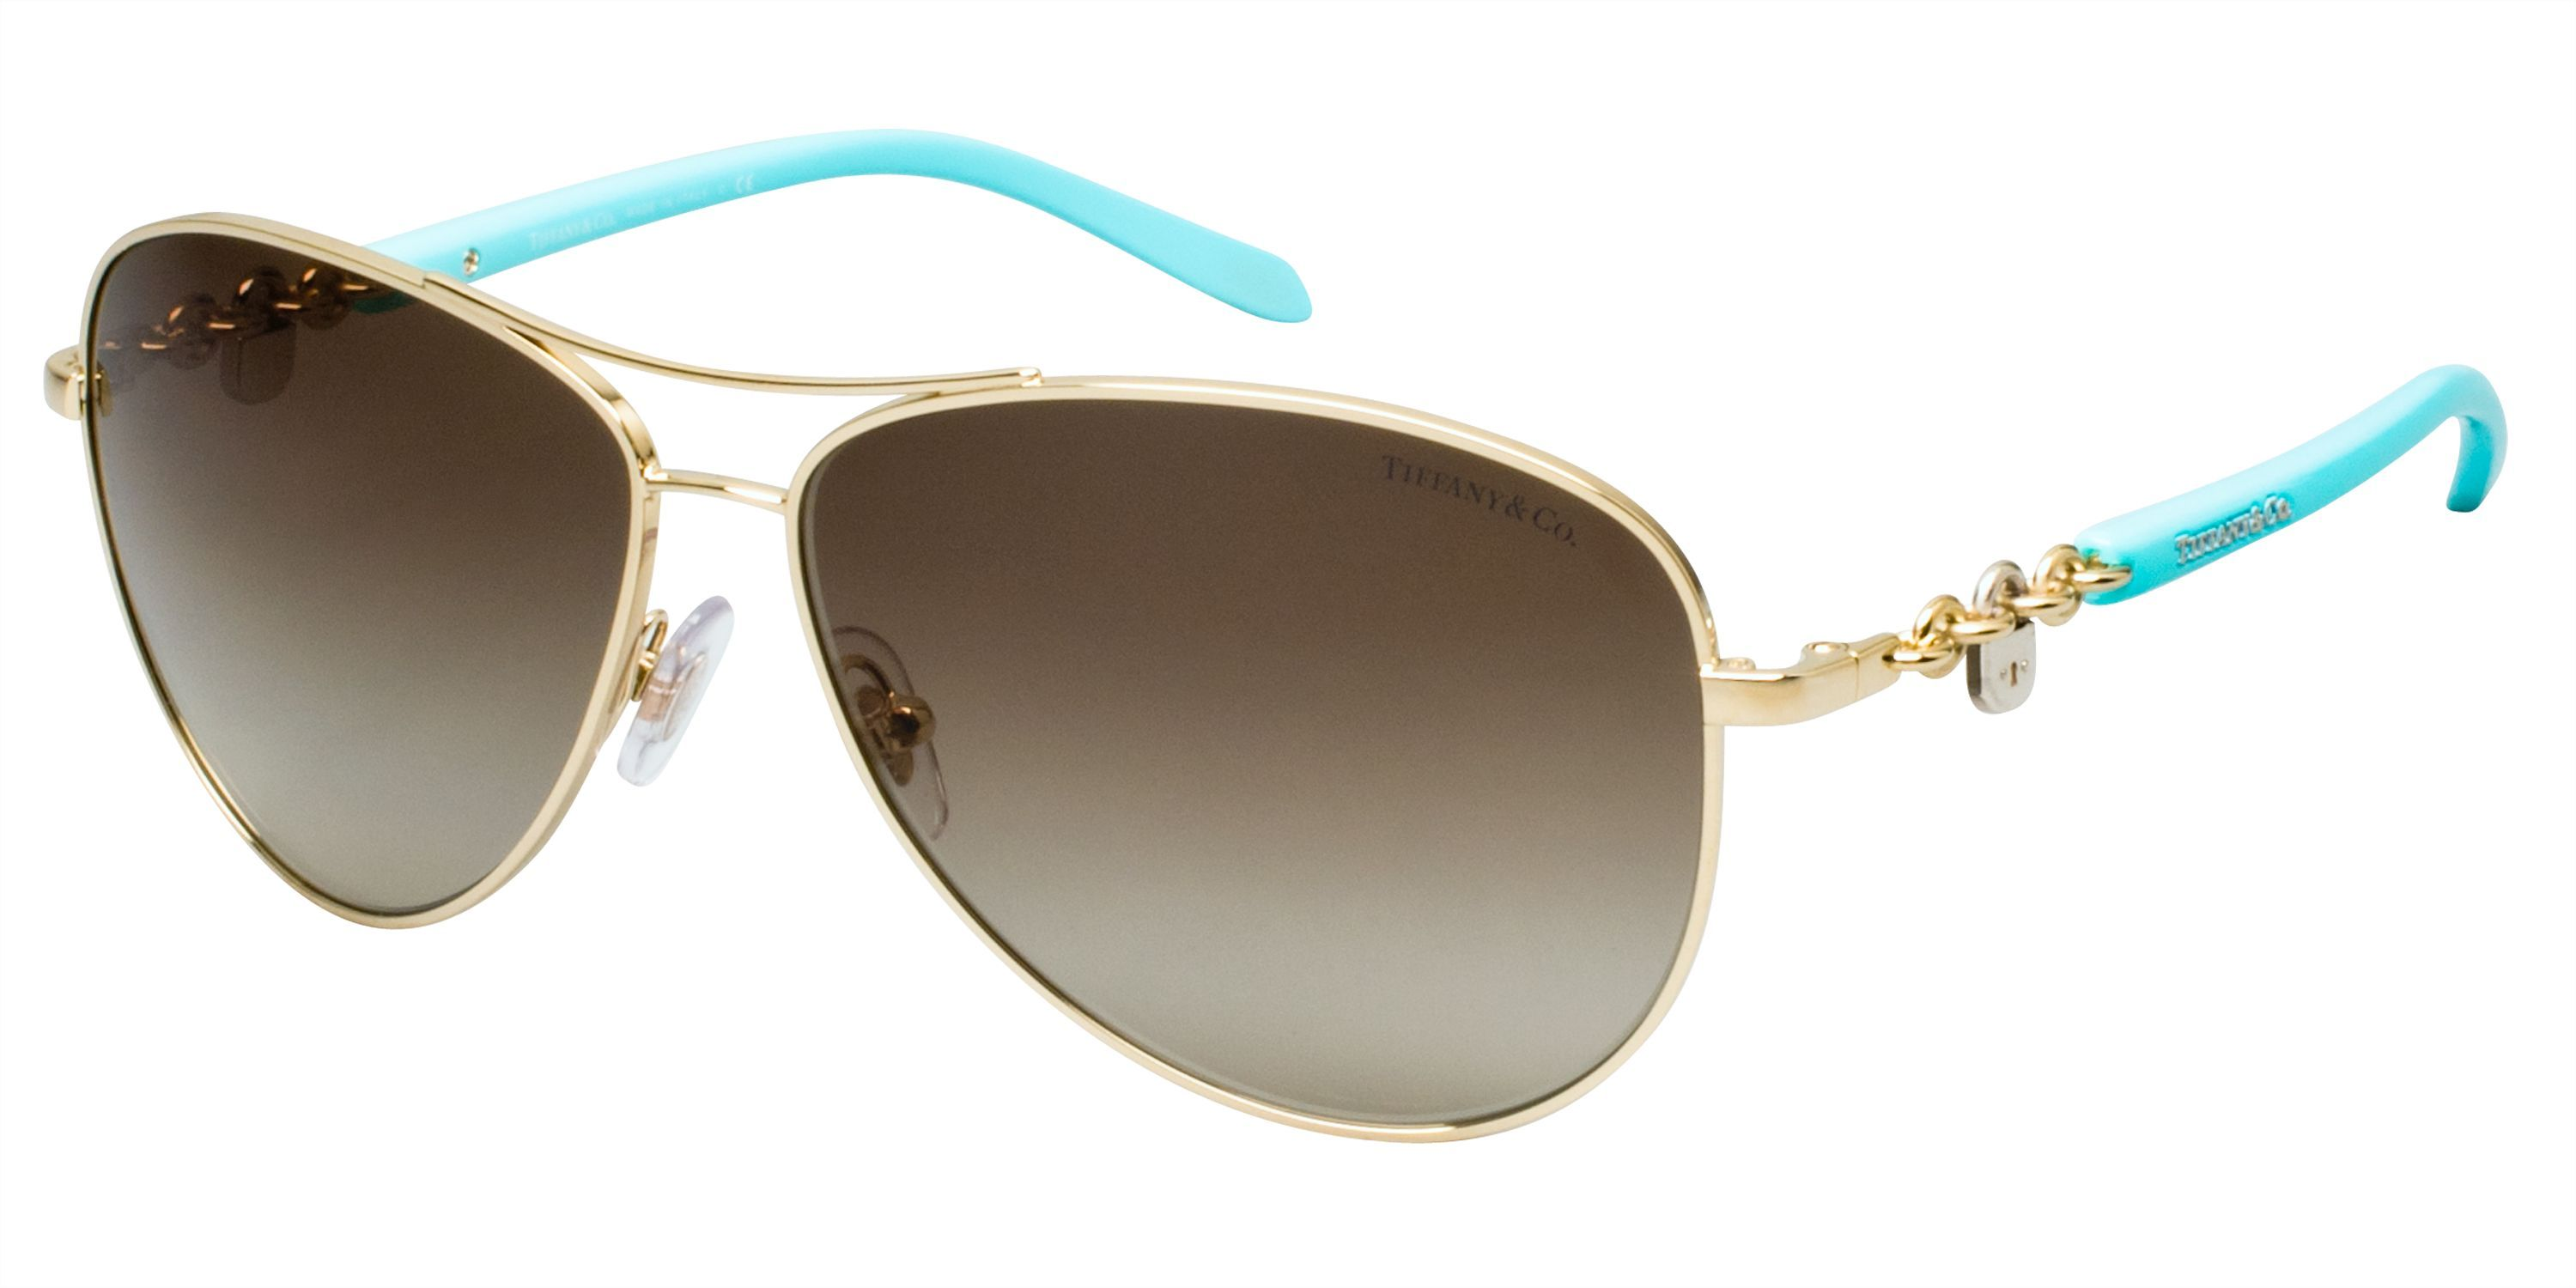 TIFFANY TF3034 - Repin your favorite frame and win a USD300 ...